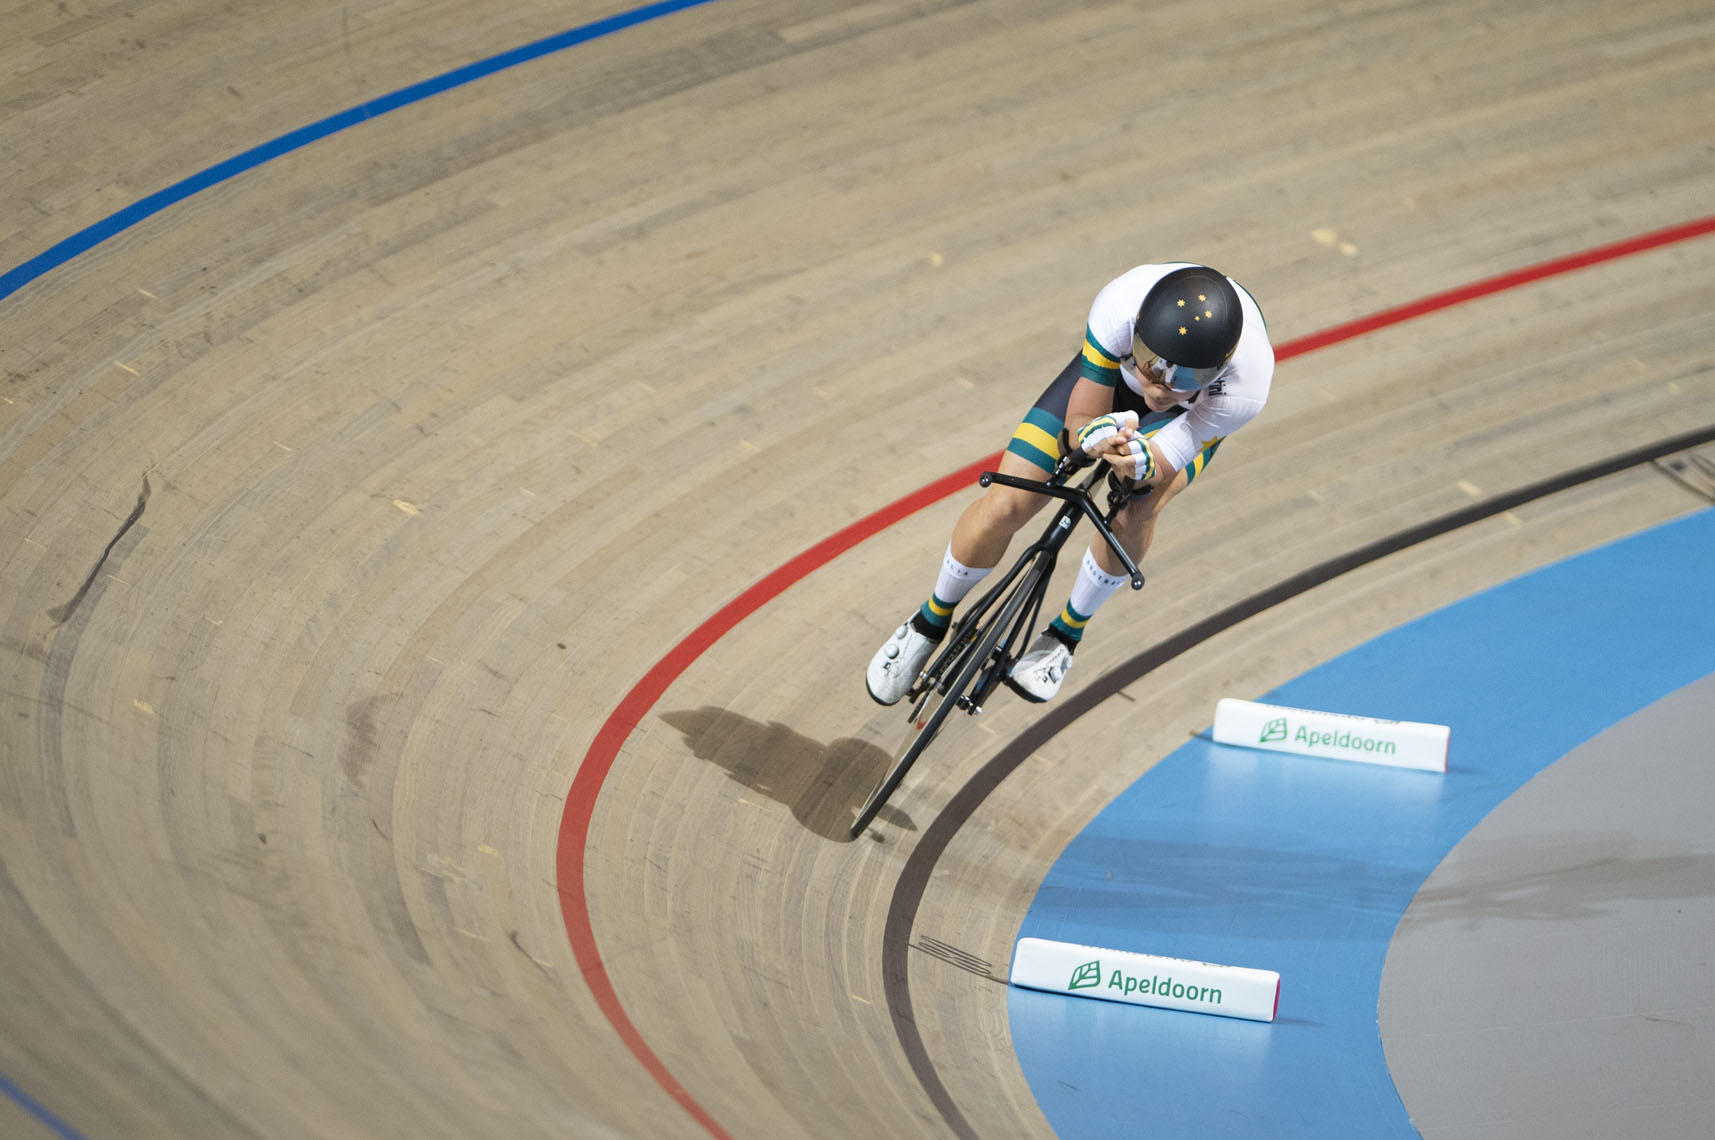 UCI Paracycling Track World Championships, Apeldoorn, Netherlands